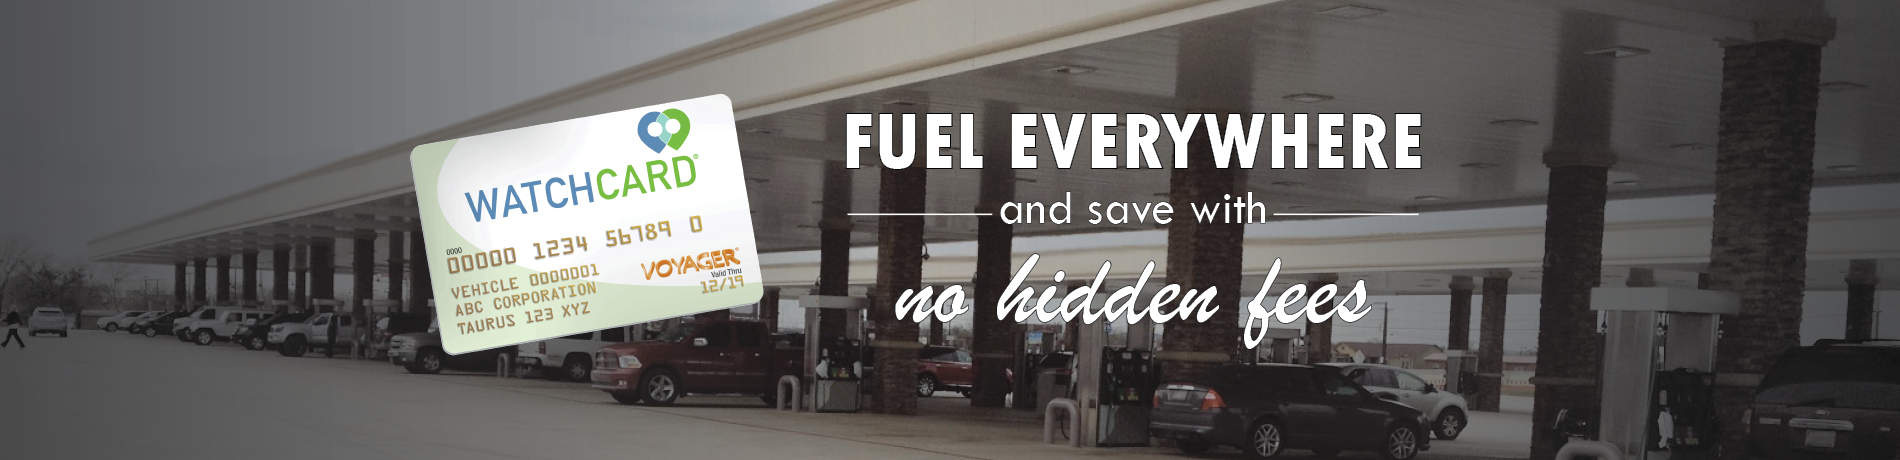 Fleet Fuel Cards, Gas Cards, and GPS Fleet Management & Tracking